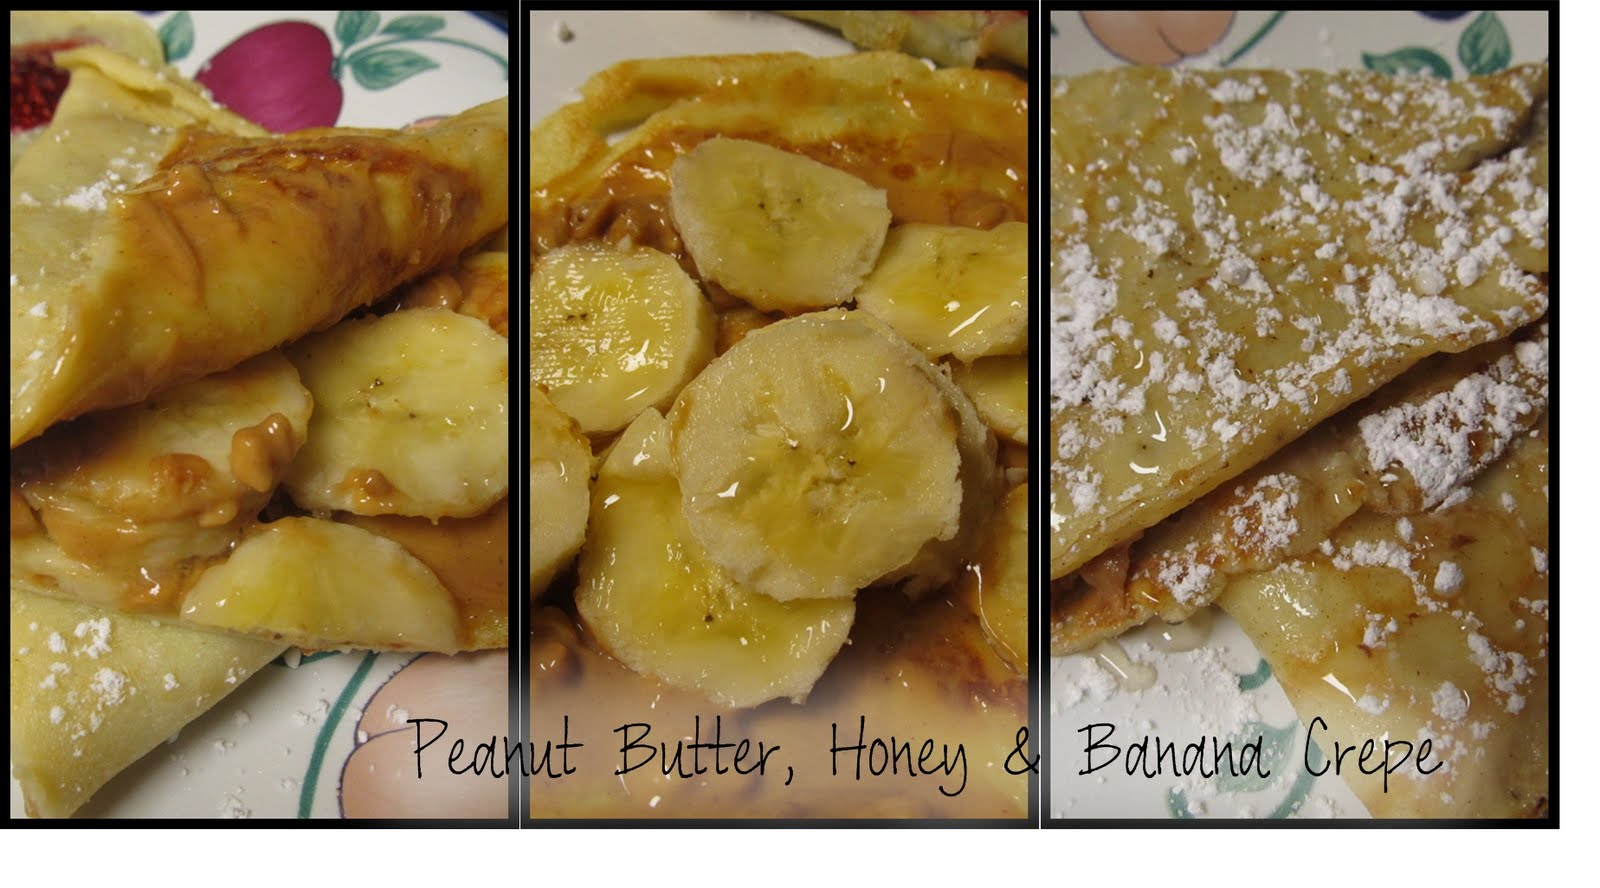 WOW, Peanut Butter, Honey & Banana.